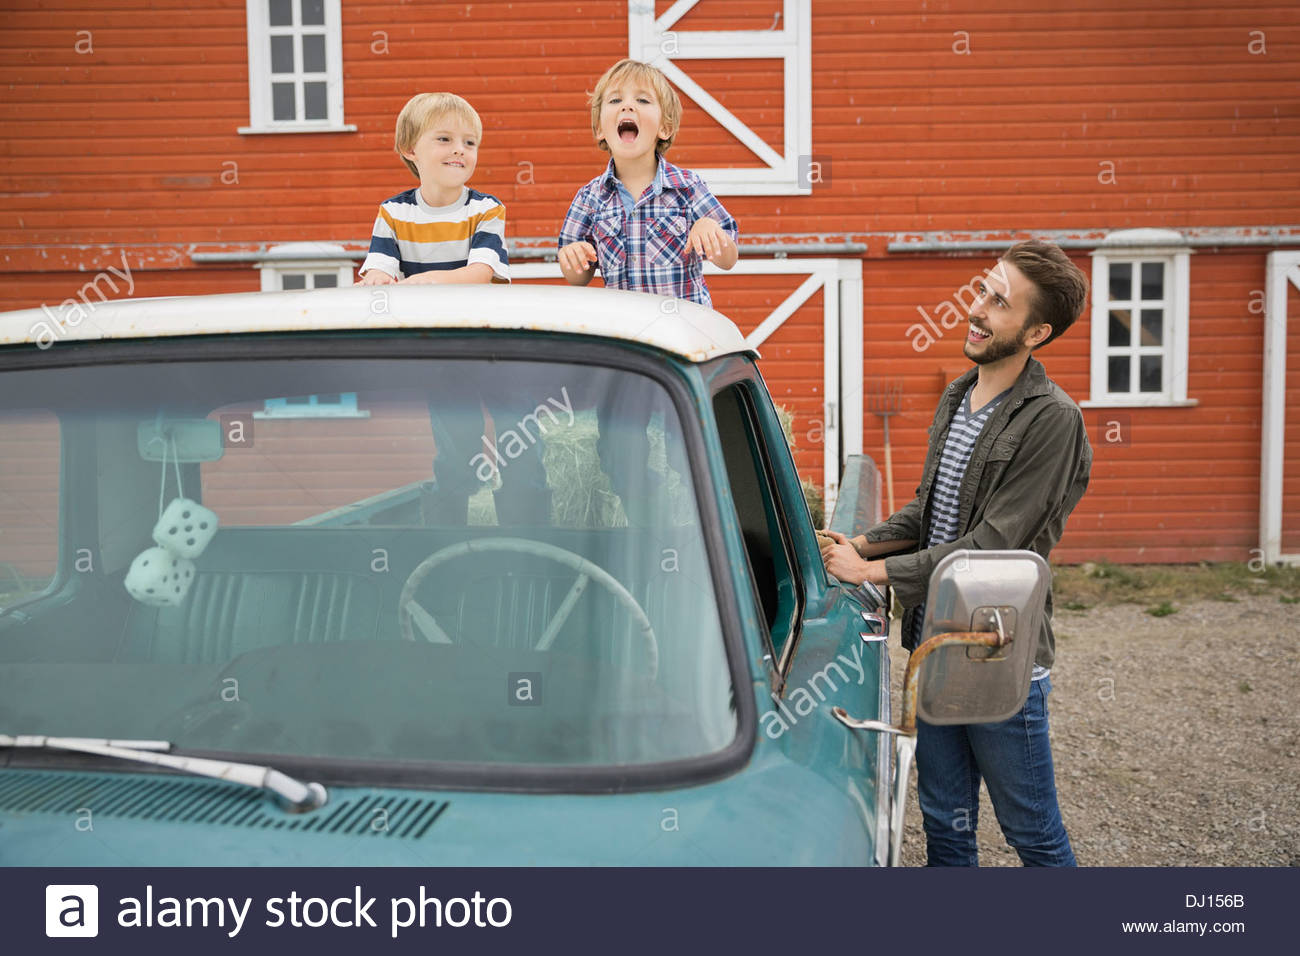 Man looking at children standing on pick-up truck - Stock Image